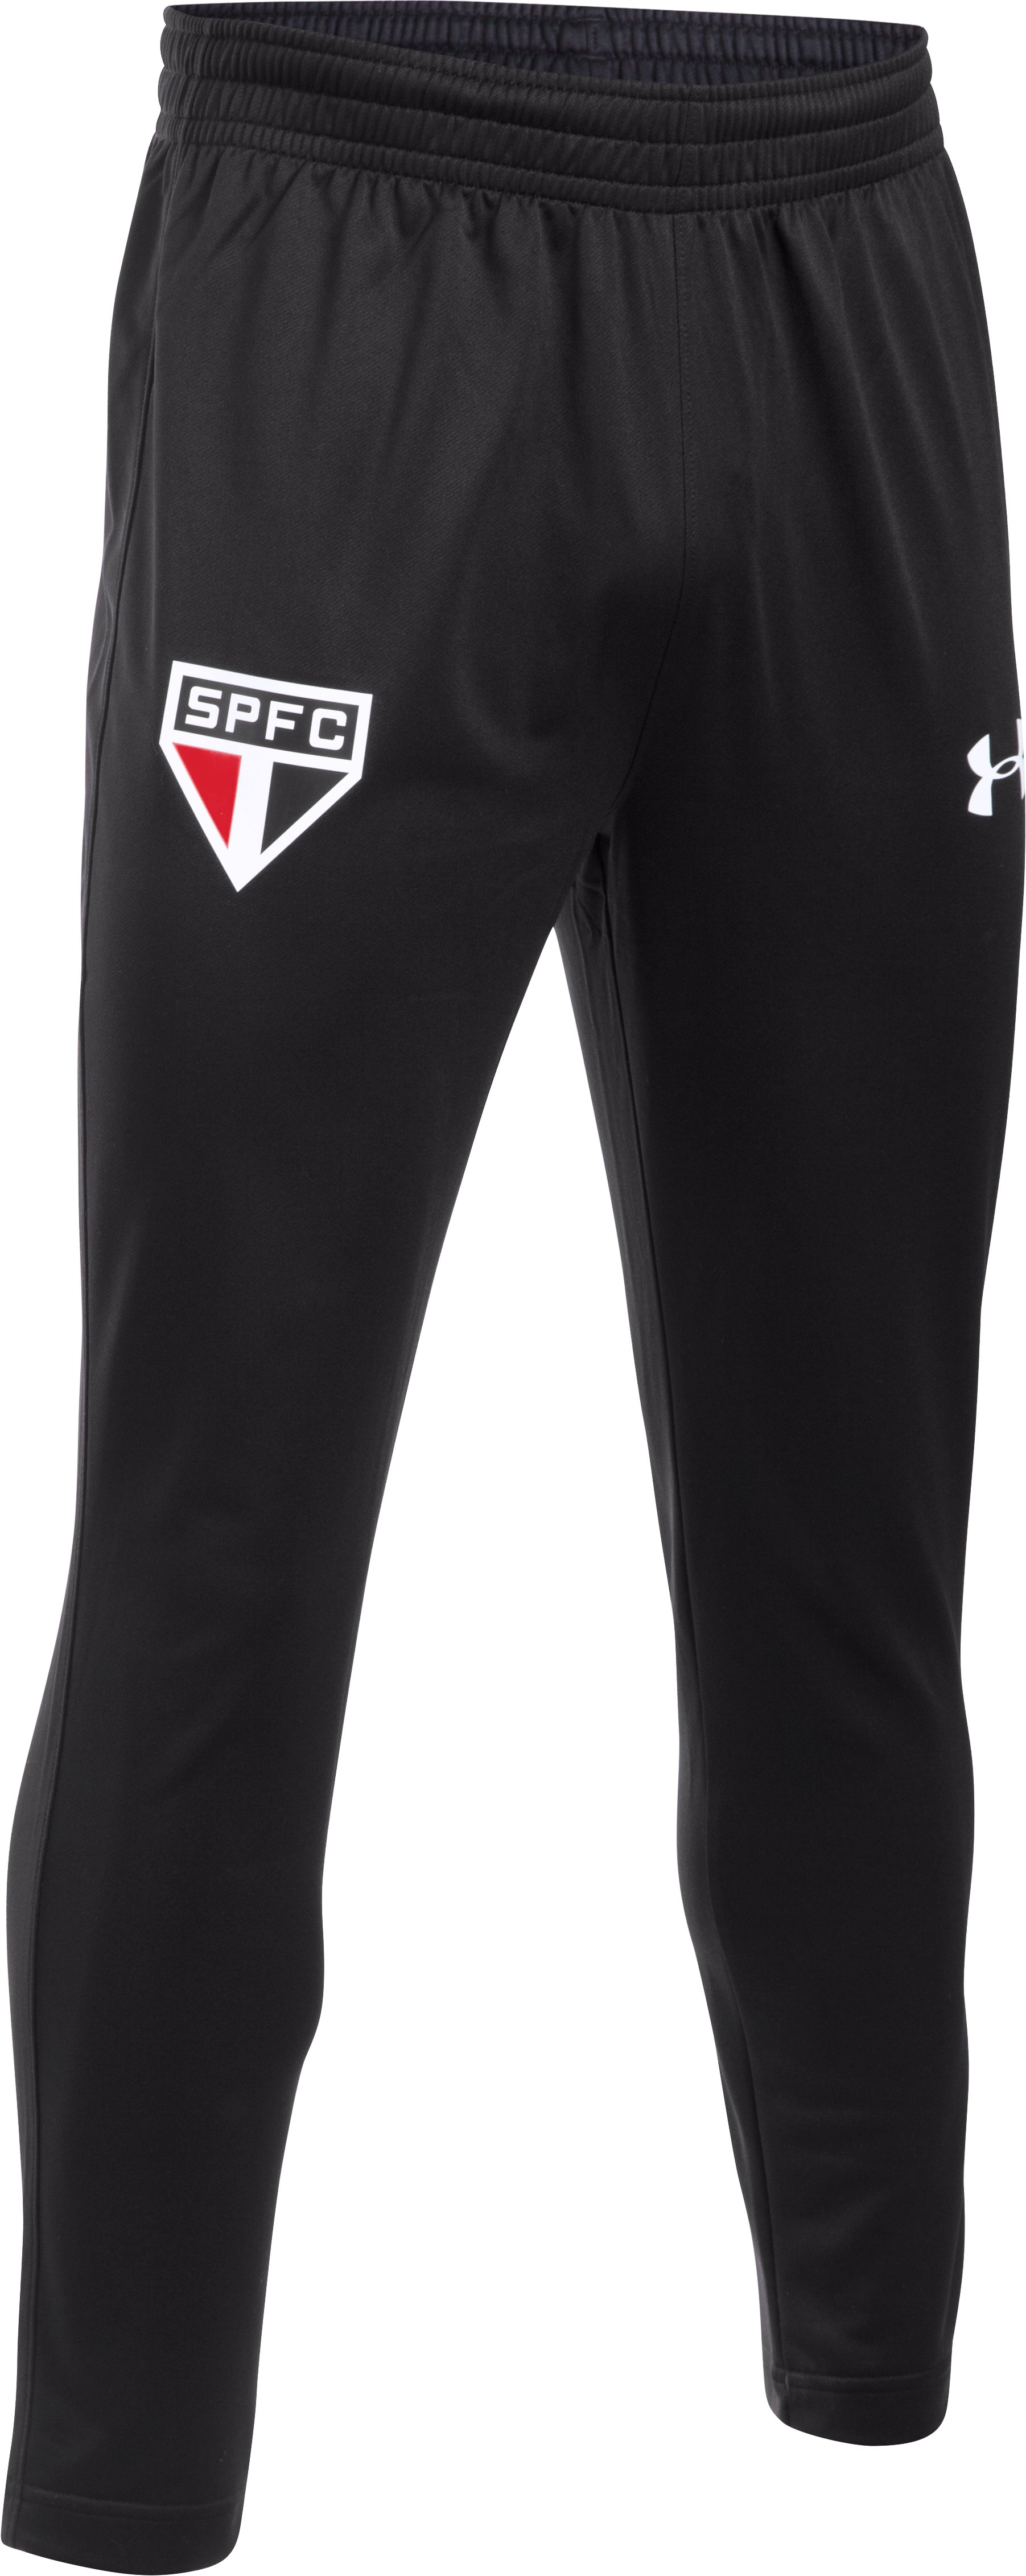 Men's Sao Paulo Training Pants, Black